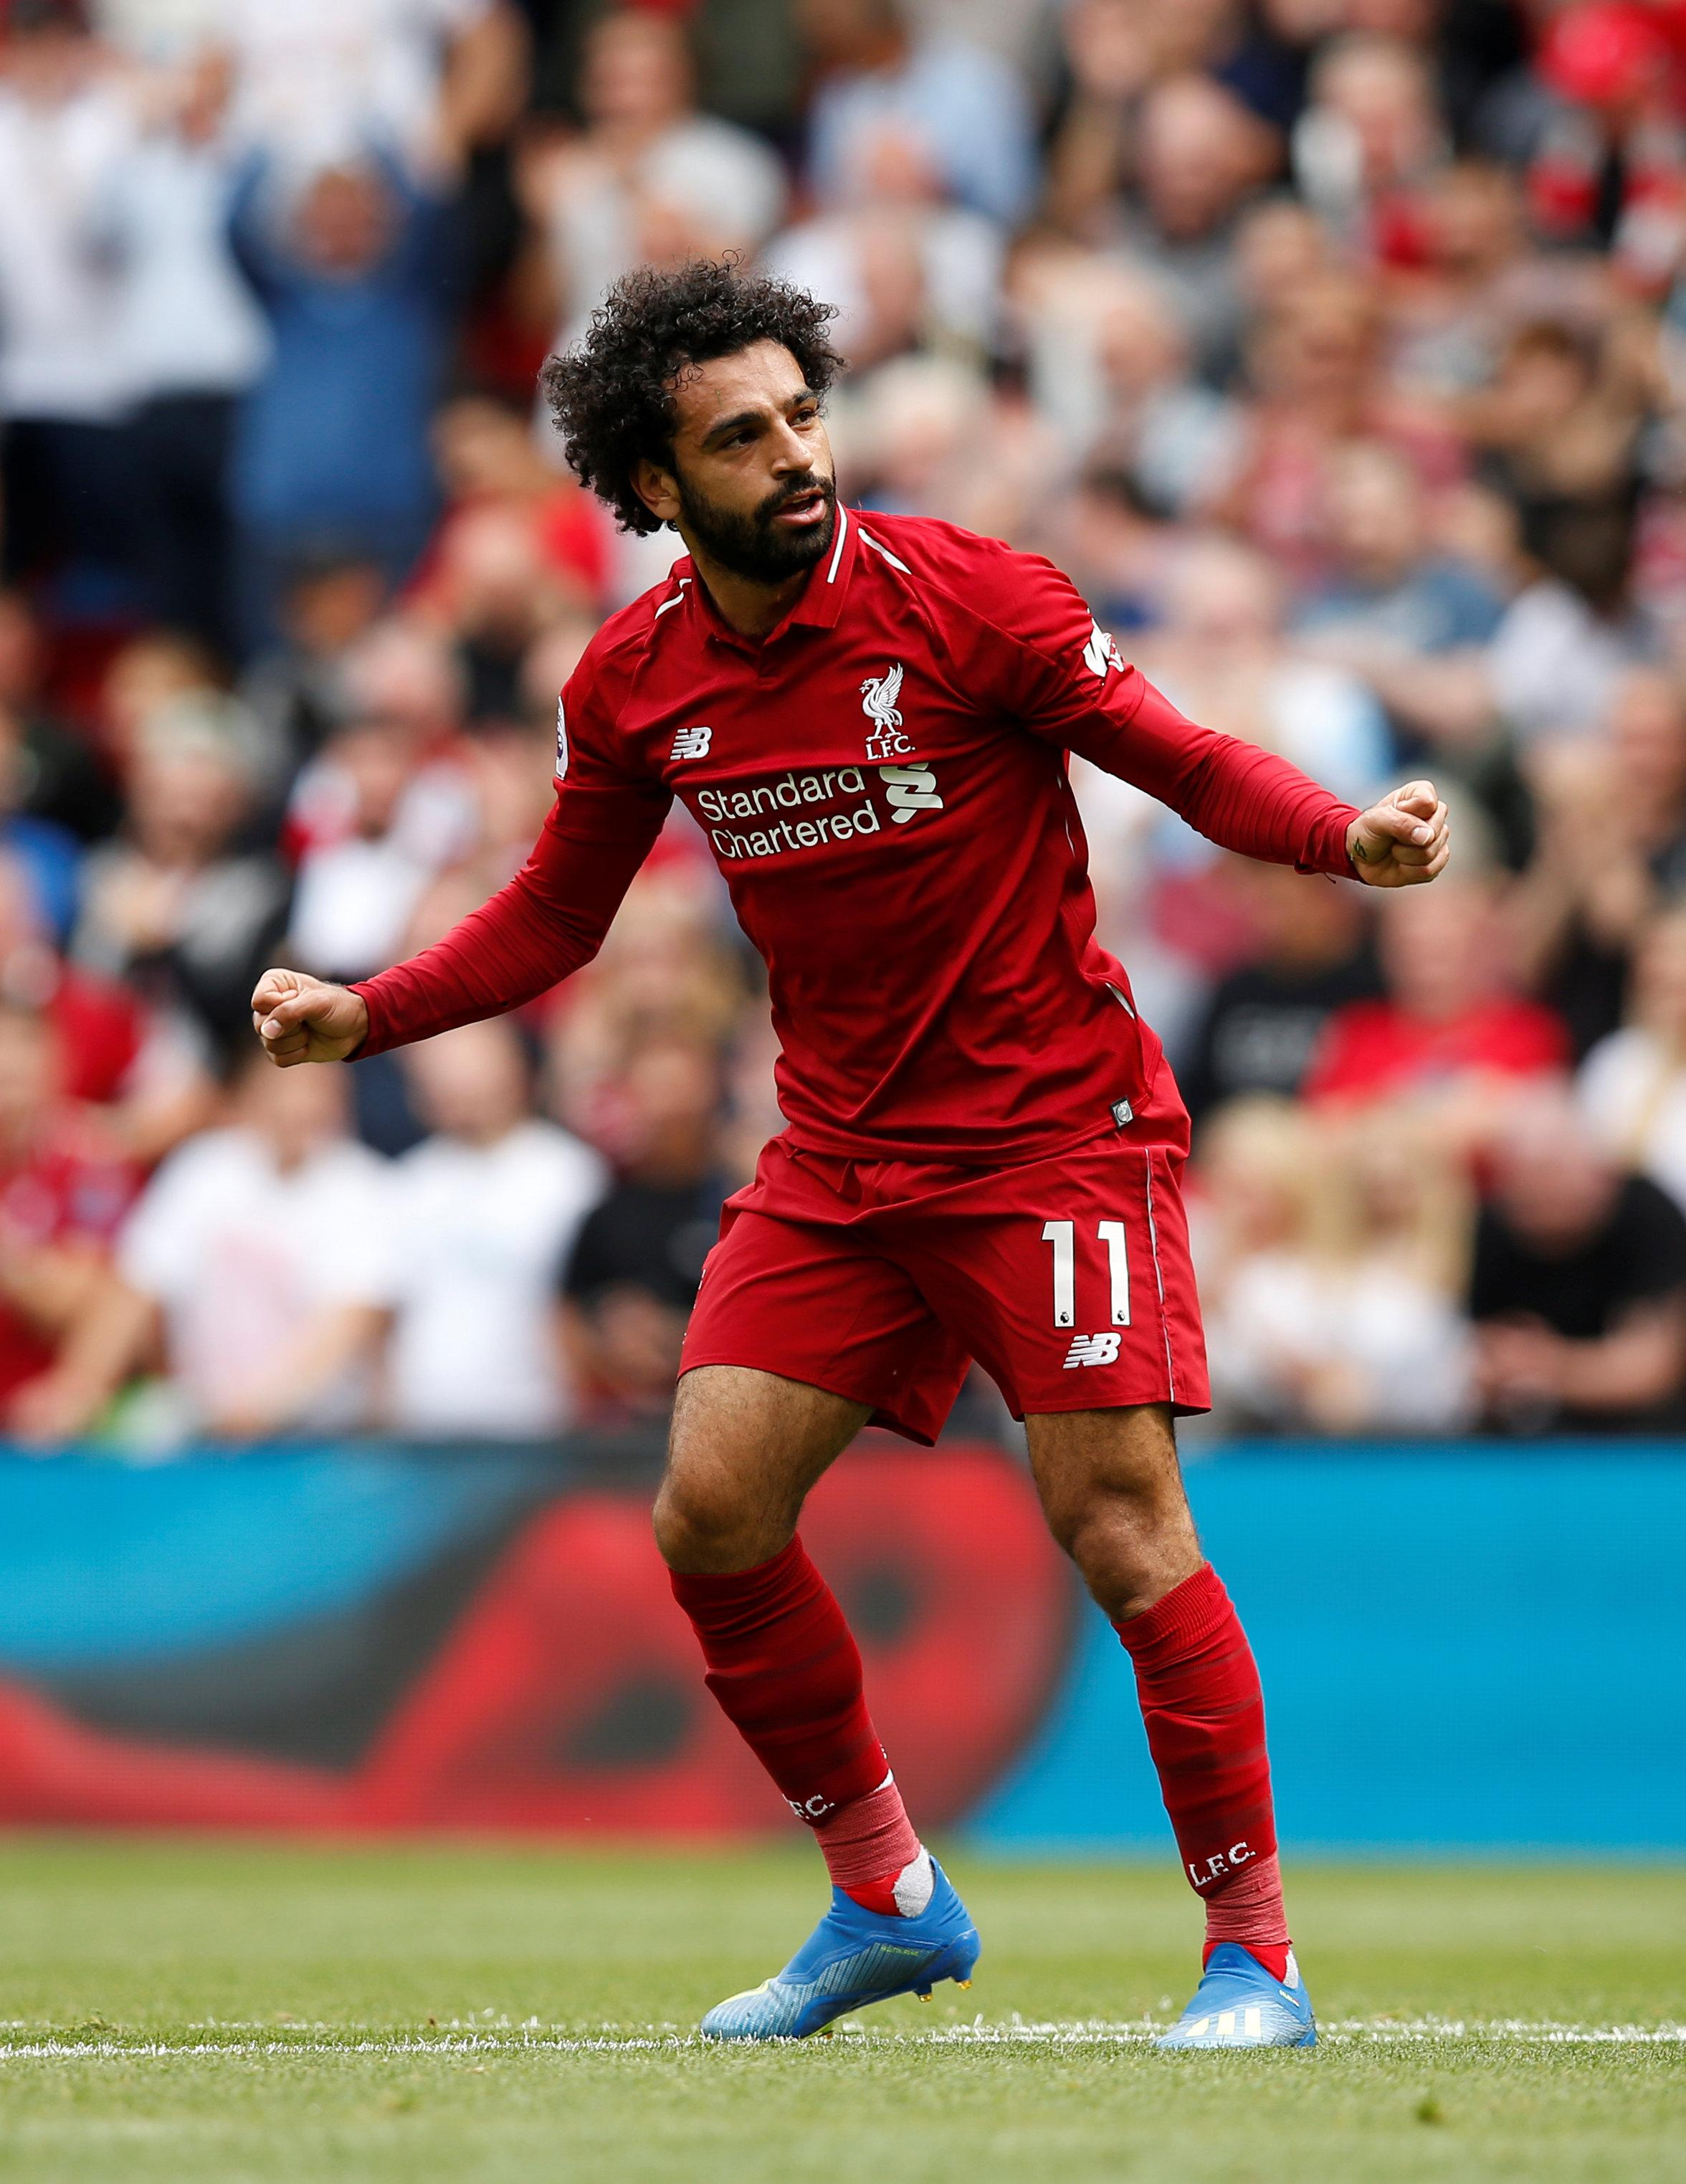 PFA Player of the Year Mohamed Salah put Liverpool ahead in the 19th minute